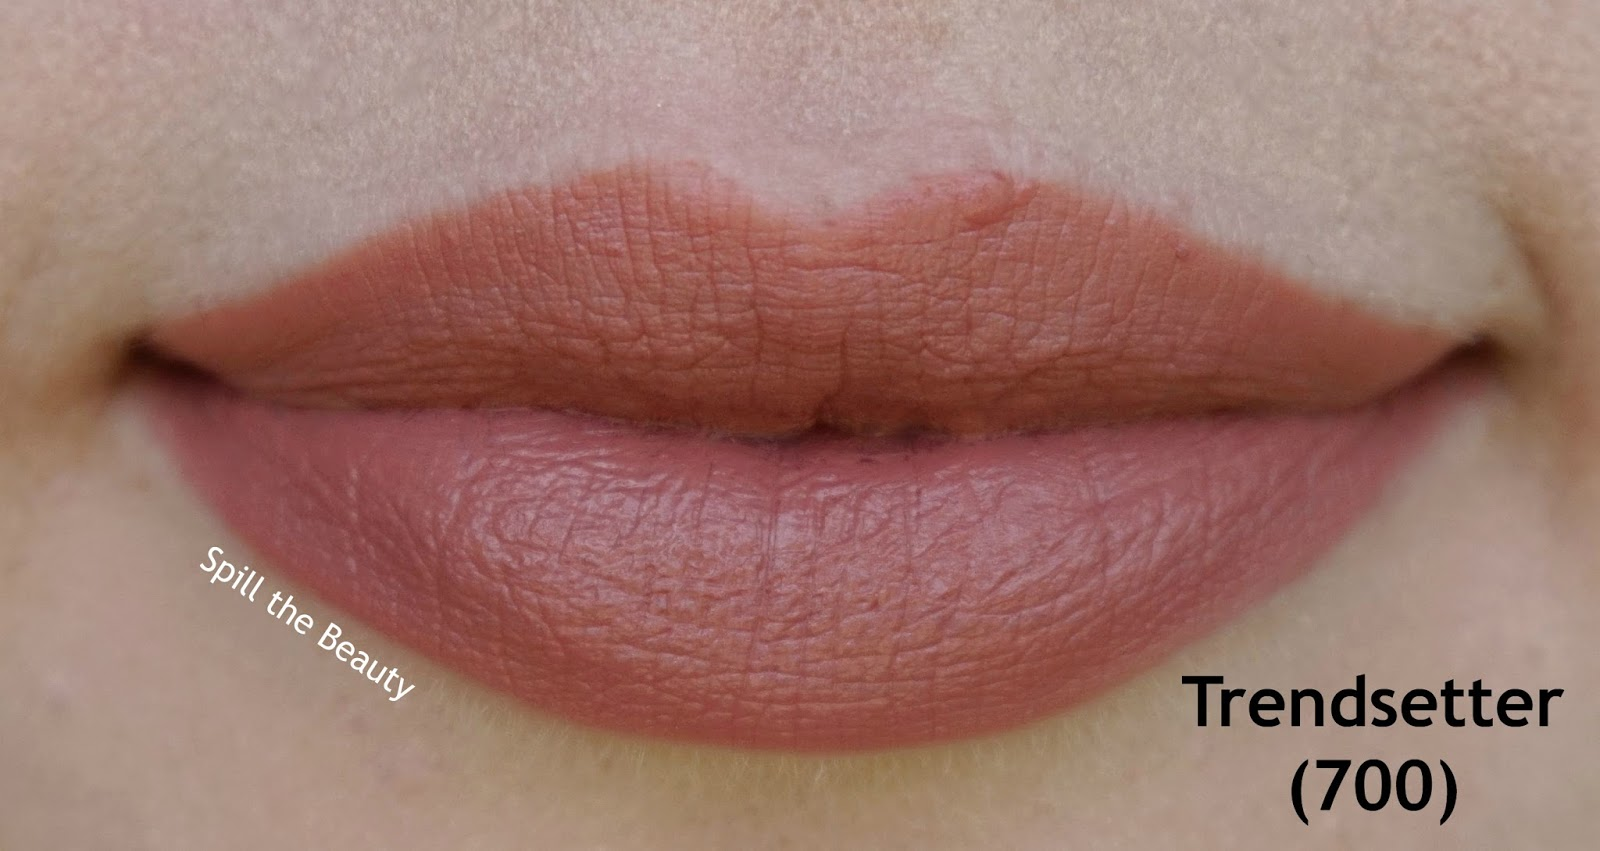 rimmel the only 1 matte lipstick review swatches 700 - trendsetter. '